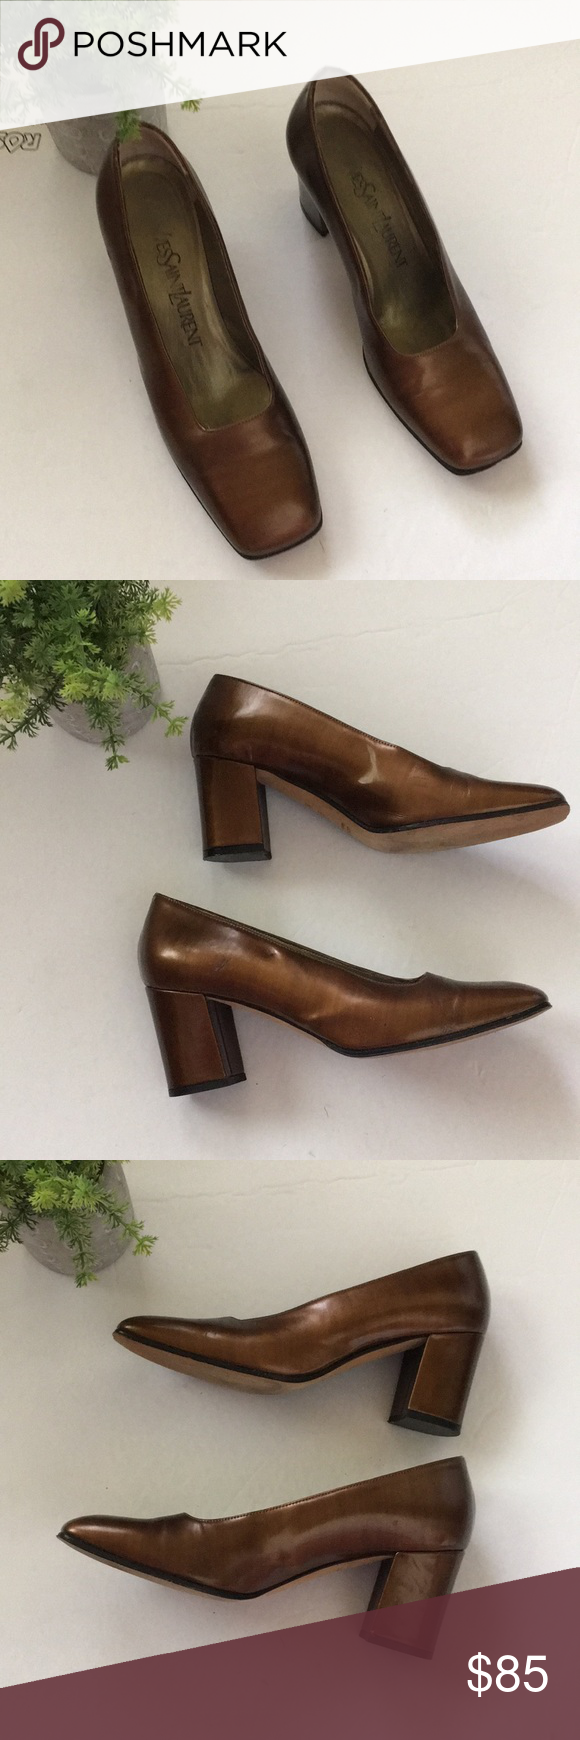 """YVES SAINT LAURENT metallic leather bronze pumps Good vintage condition Smoke/pet free home Gorgeous bronze copper brown metallic leather 2 scratch marks on left side of right shoe (price reflects) 2 1/2"""" block heel Square toe Size 5 M Made in italy I video packaging and shipping for your protection and mine Yves Saint Laurent Shoes Heels #metallicleather"""